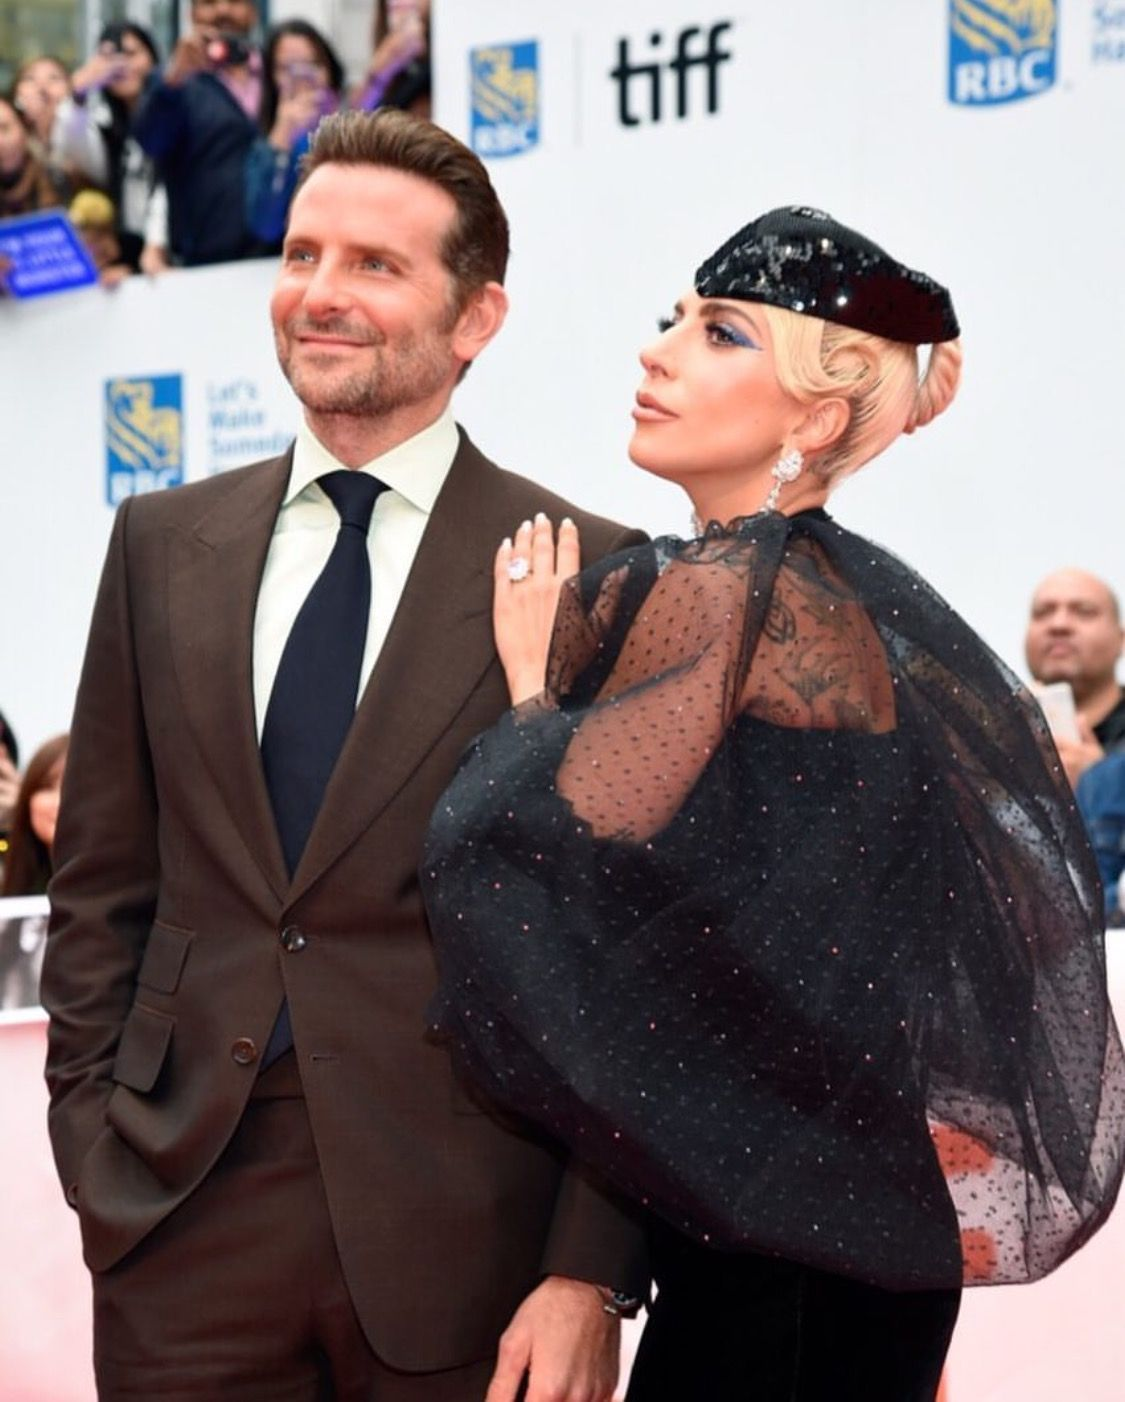 Lady Gaga does not mess around when it comes to her fashion -  Lady Gaga does not mess around when it comes to her fashion #LadyGaga #singer #songwriter #actress  - #around #CelebrityNews #CelebrityPhotos #comes #fashion #Gaga #JamieDornan #Lady #Mess